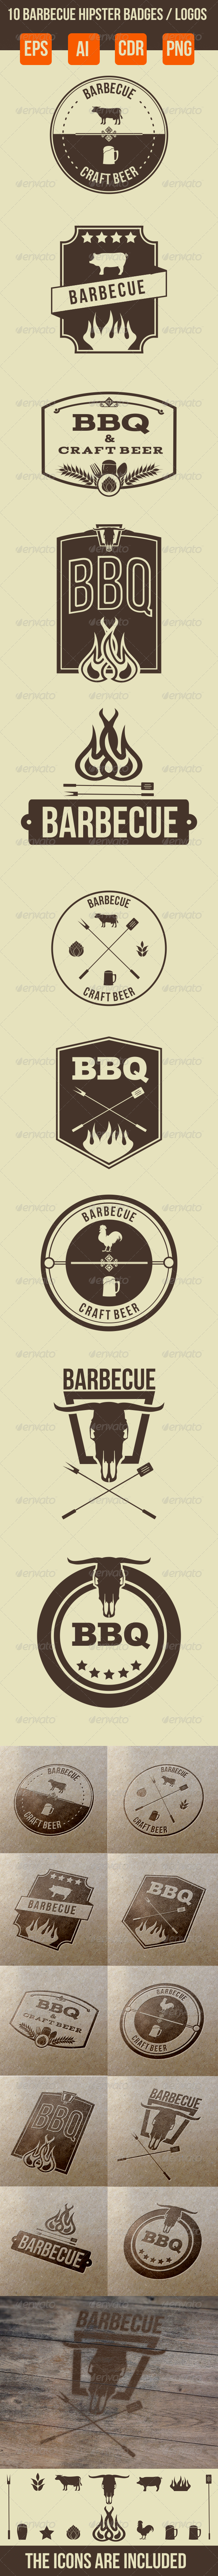 10 Barbecue Hipster Emblems - Retro Technology